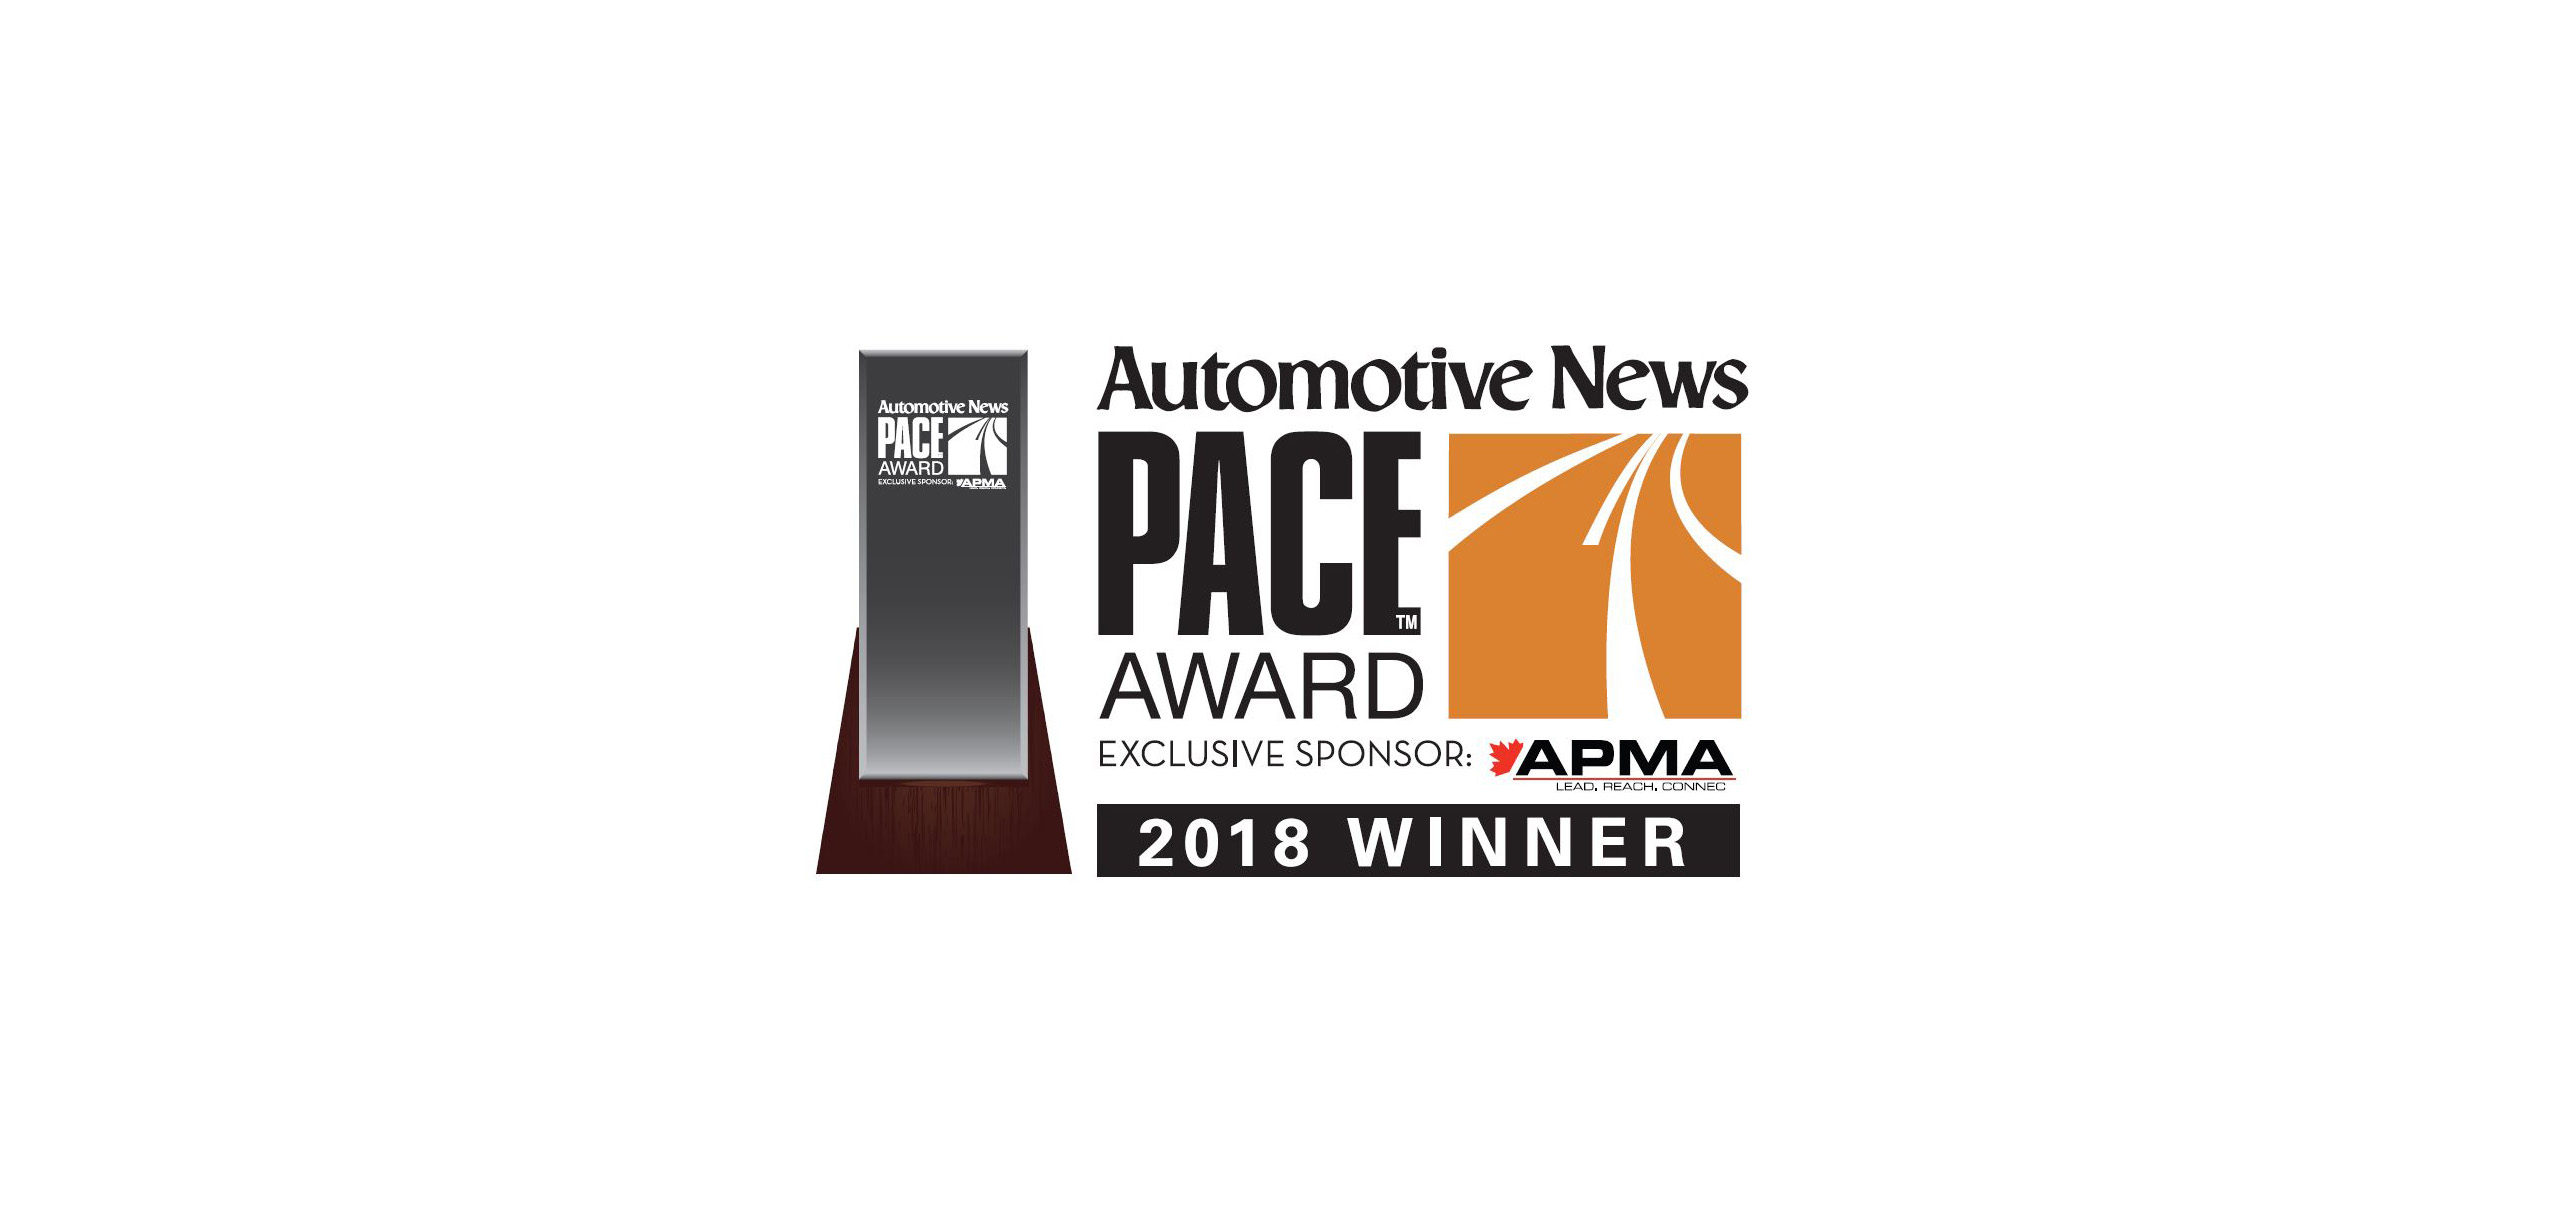 SKF gana el premio Automotive 2018